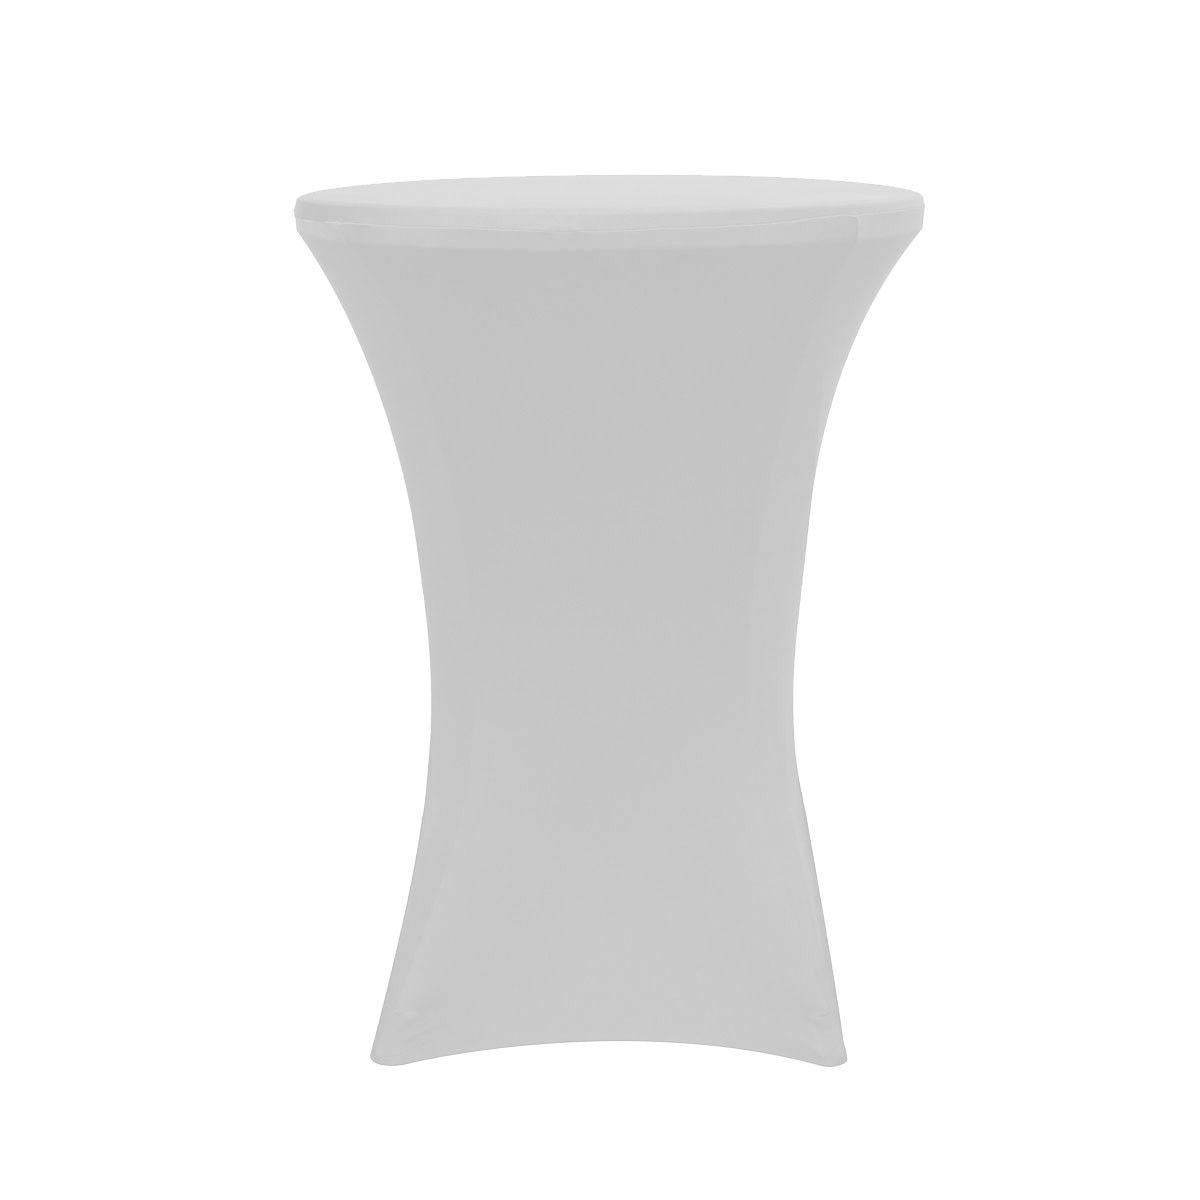 Round Spandex Stretch Tablecloth Cocktail